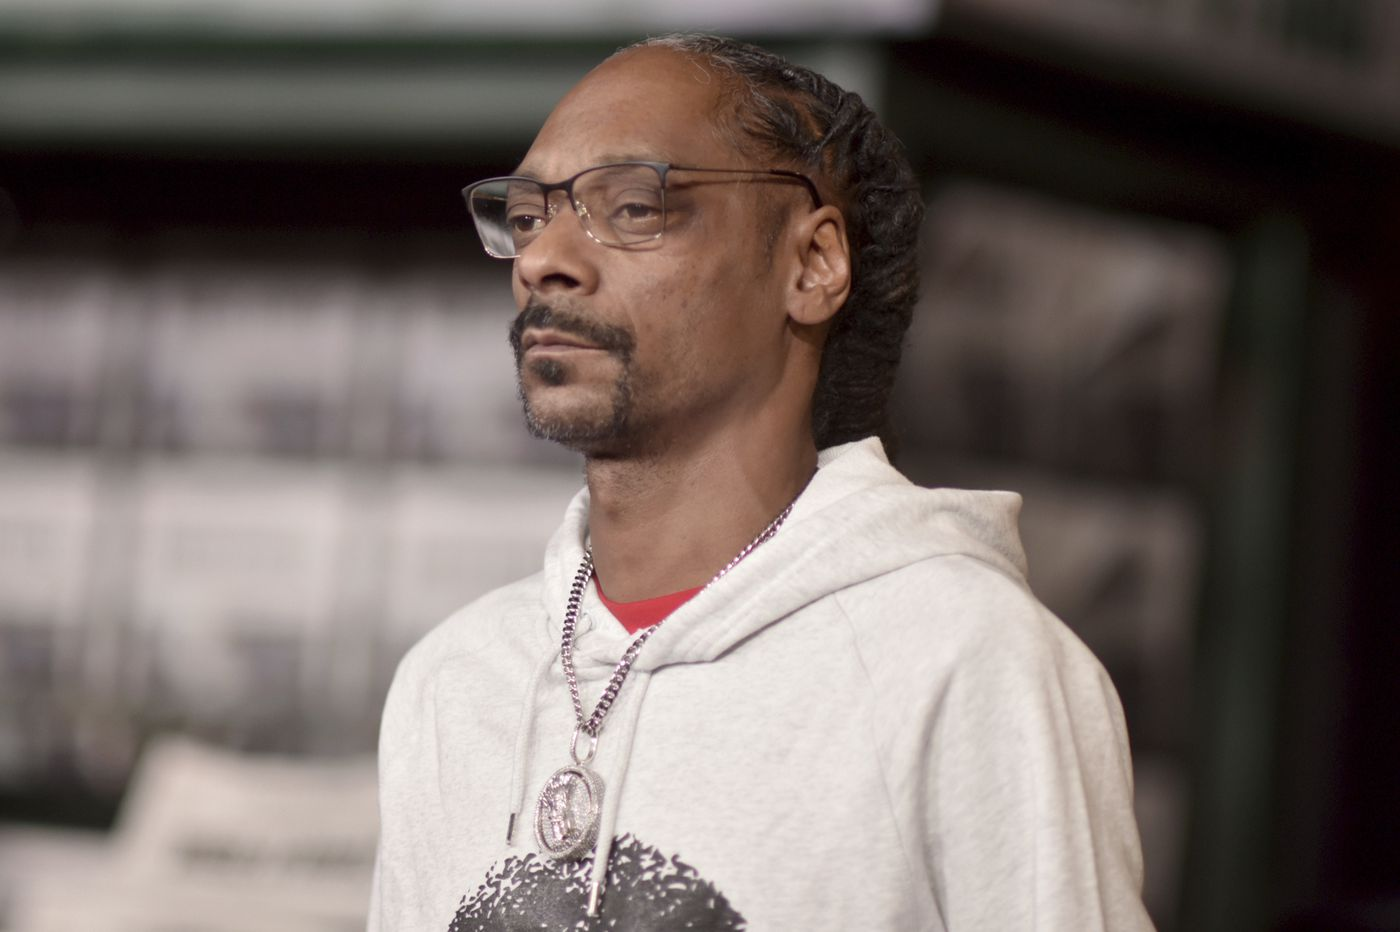 Snoop Dogg apologizes to Gayle King for rant over Kobe Bryant